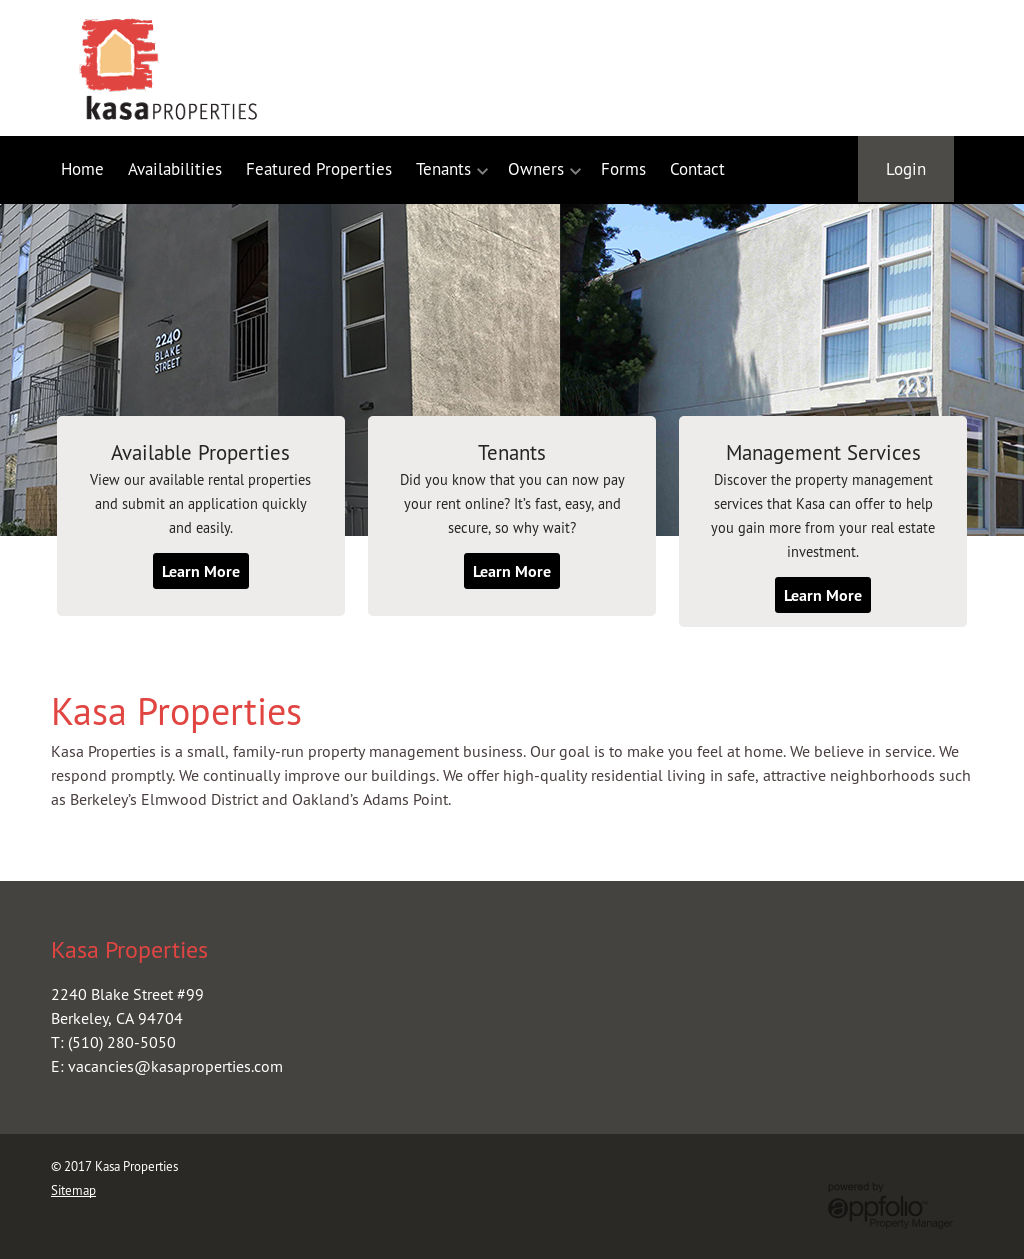 Kasa Properties Competitors, Revenue and Employees - Owler Company